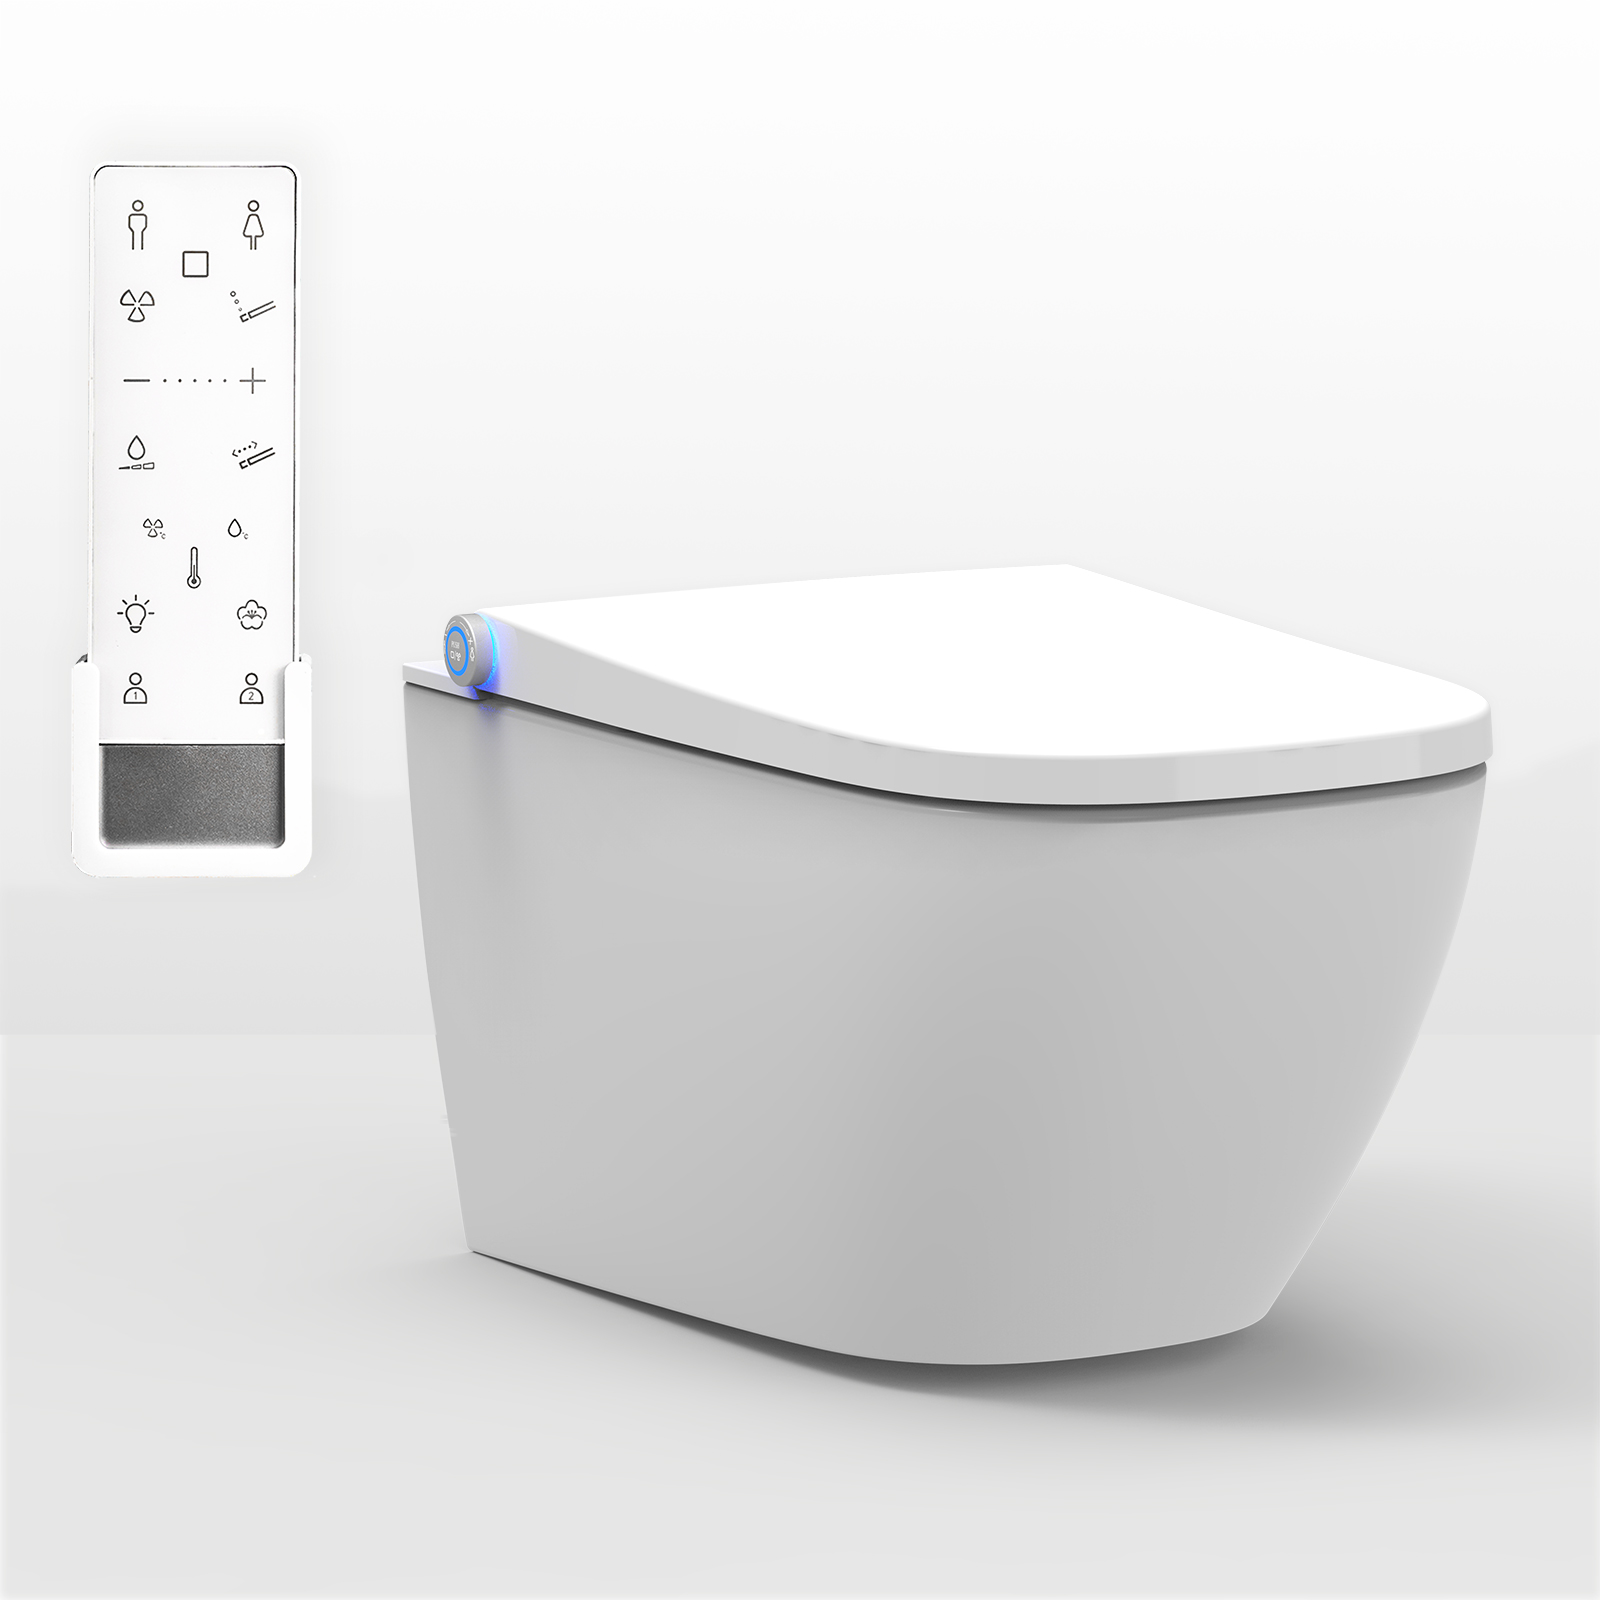 Bidet Preis Bernstein Shower Toilet Pro 1104 With Integrated Bidet